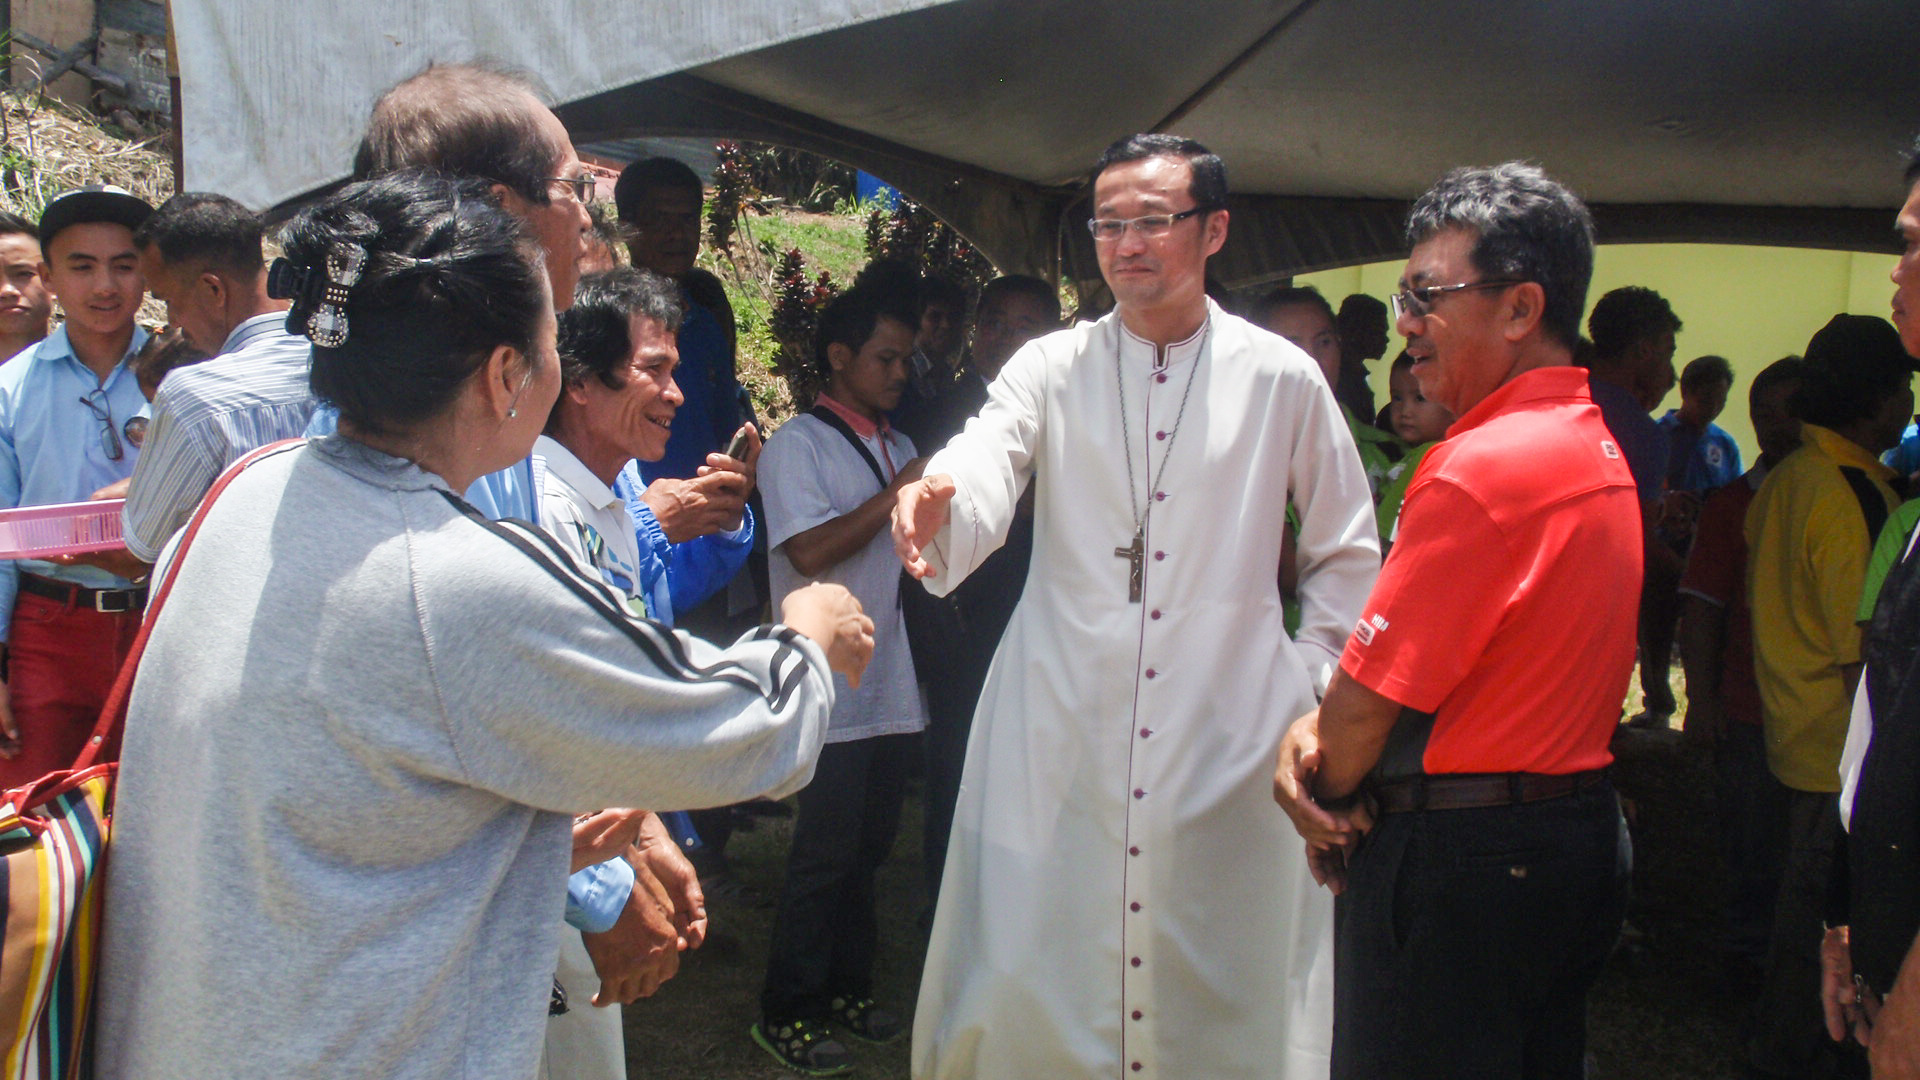 Abp Wong gets to meet the parishioners during the parish feast day.